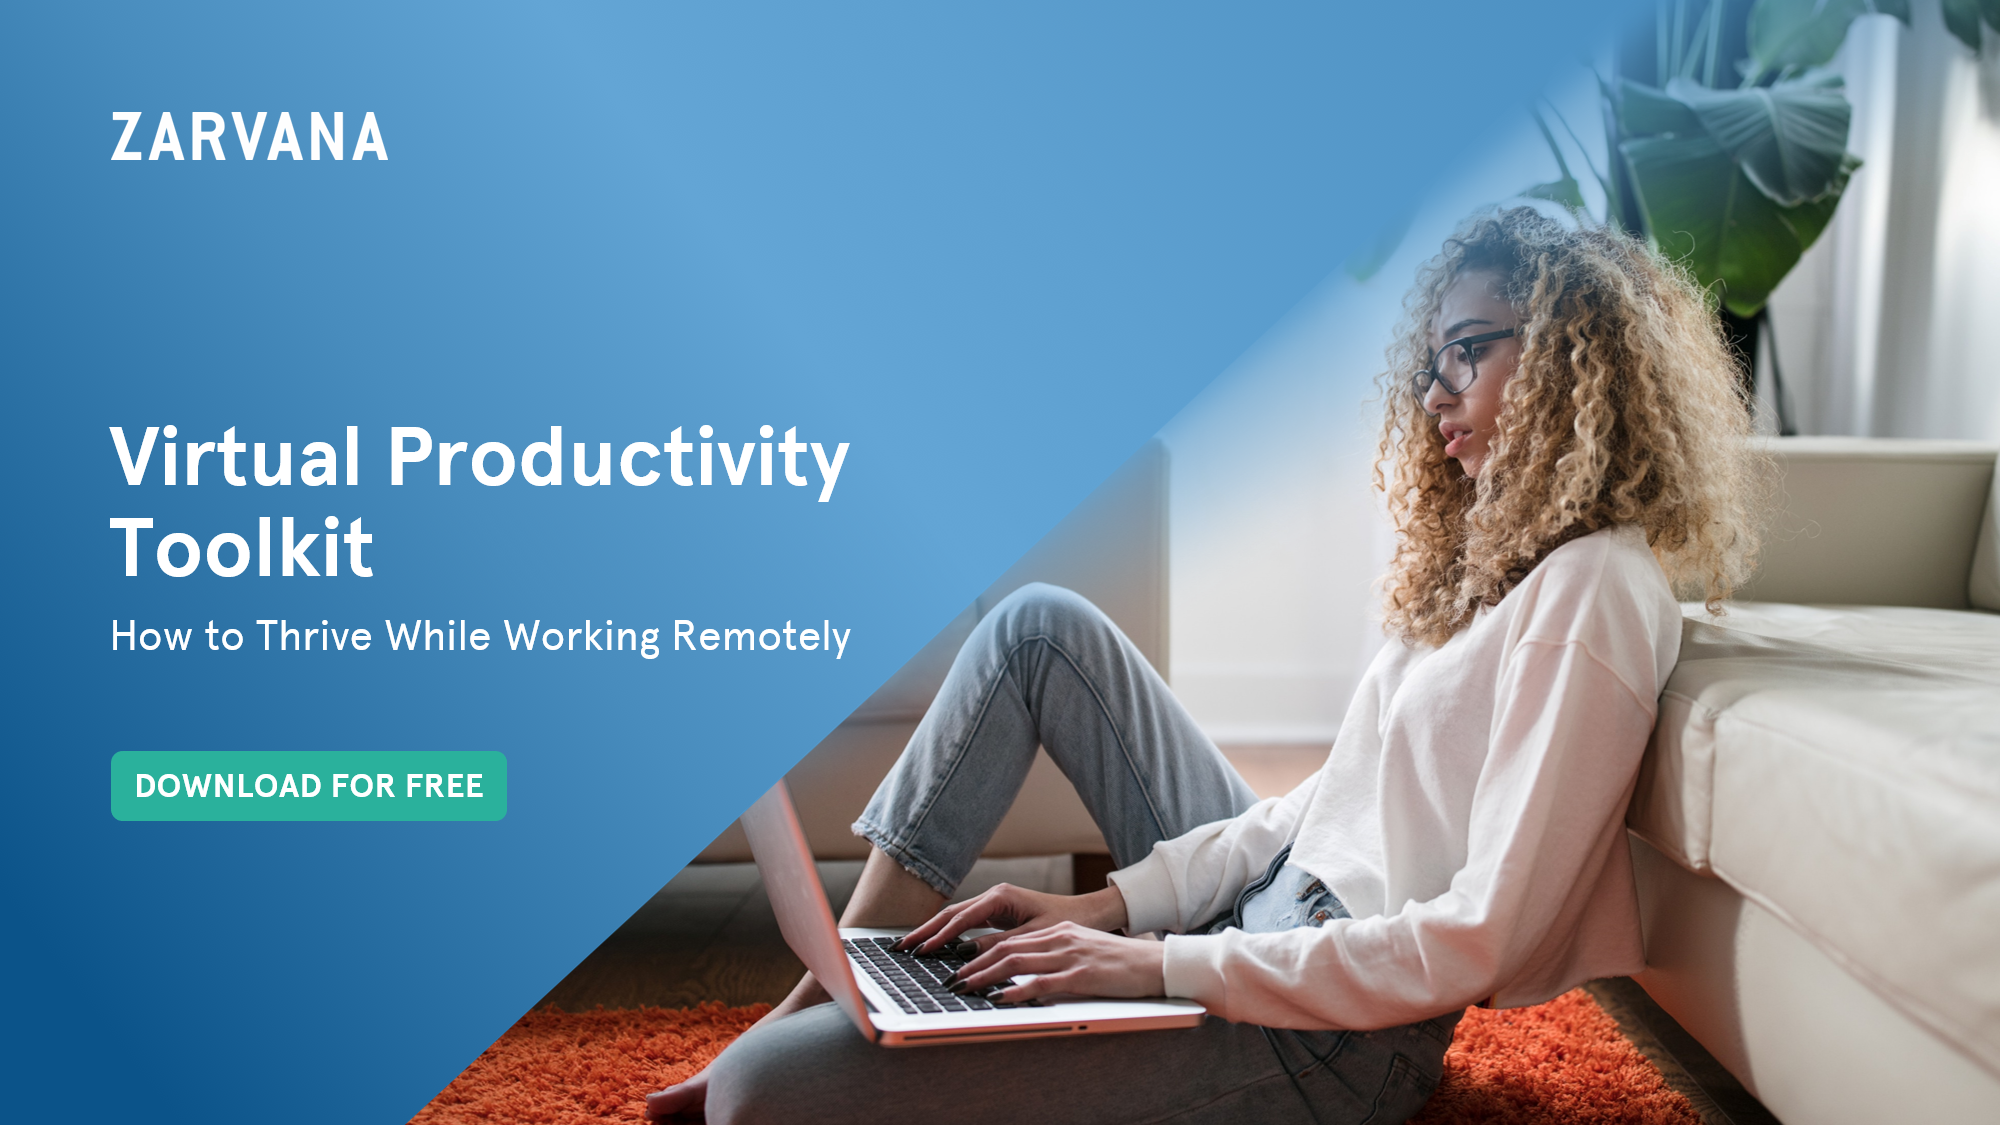 Virtual Productivity Remote Work Toolkit